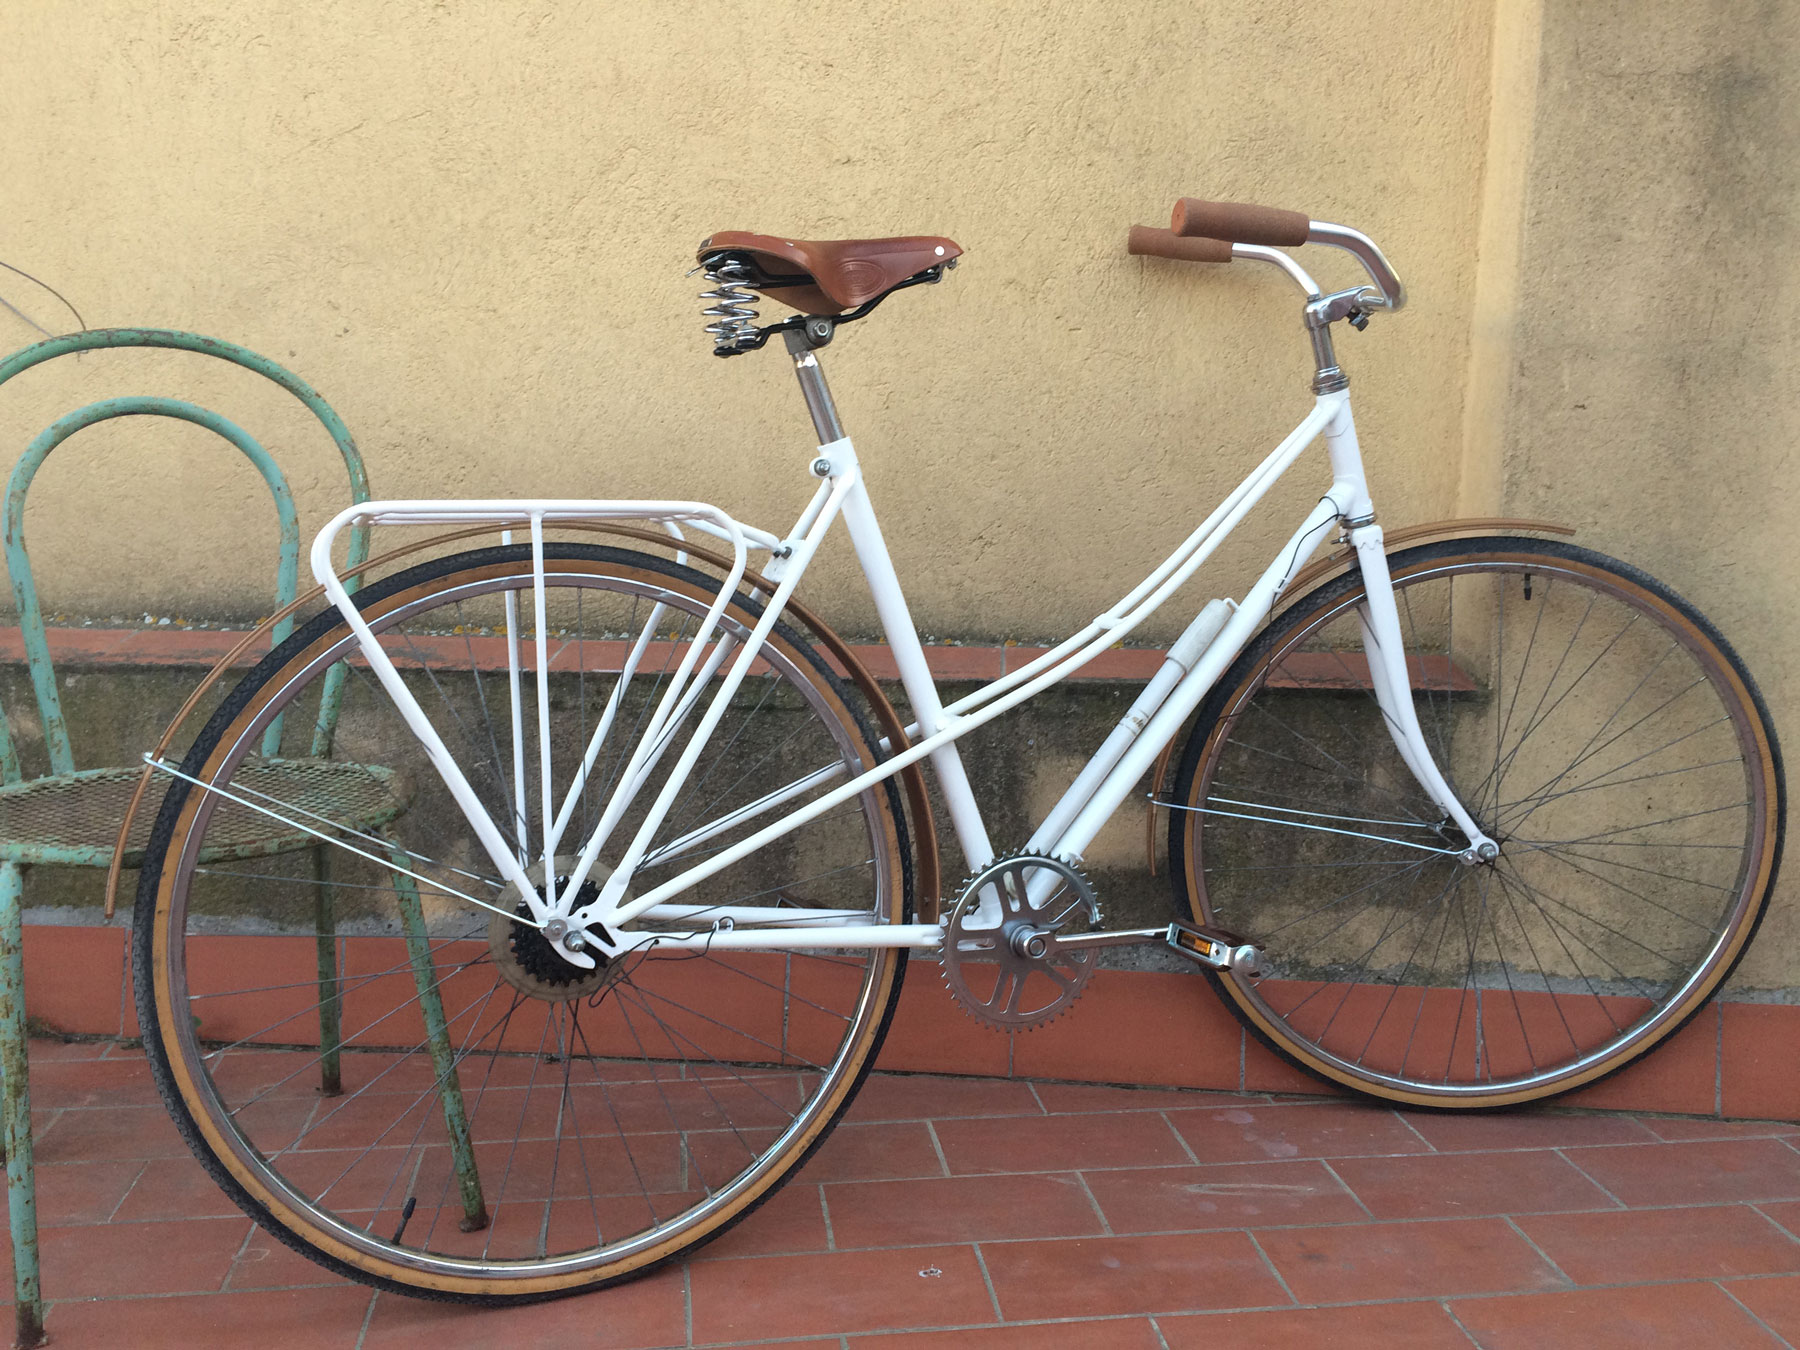 Upcycled bicycle.  With Cutero Bikes. More soon...